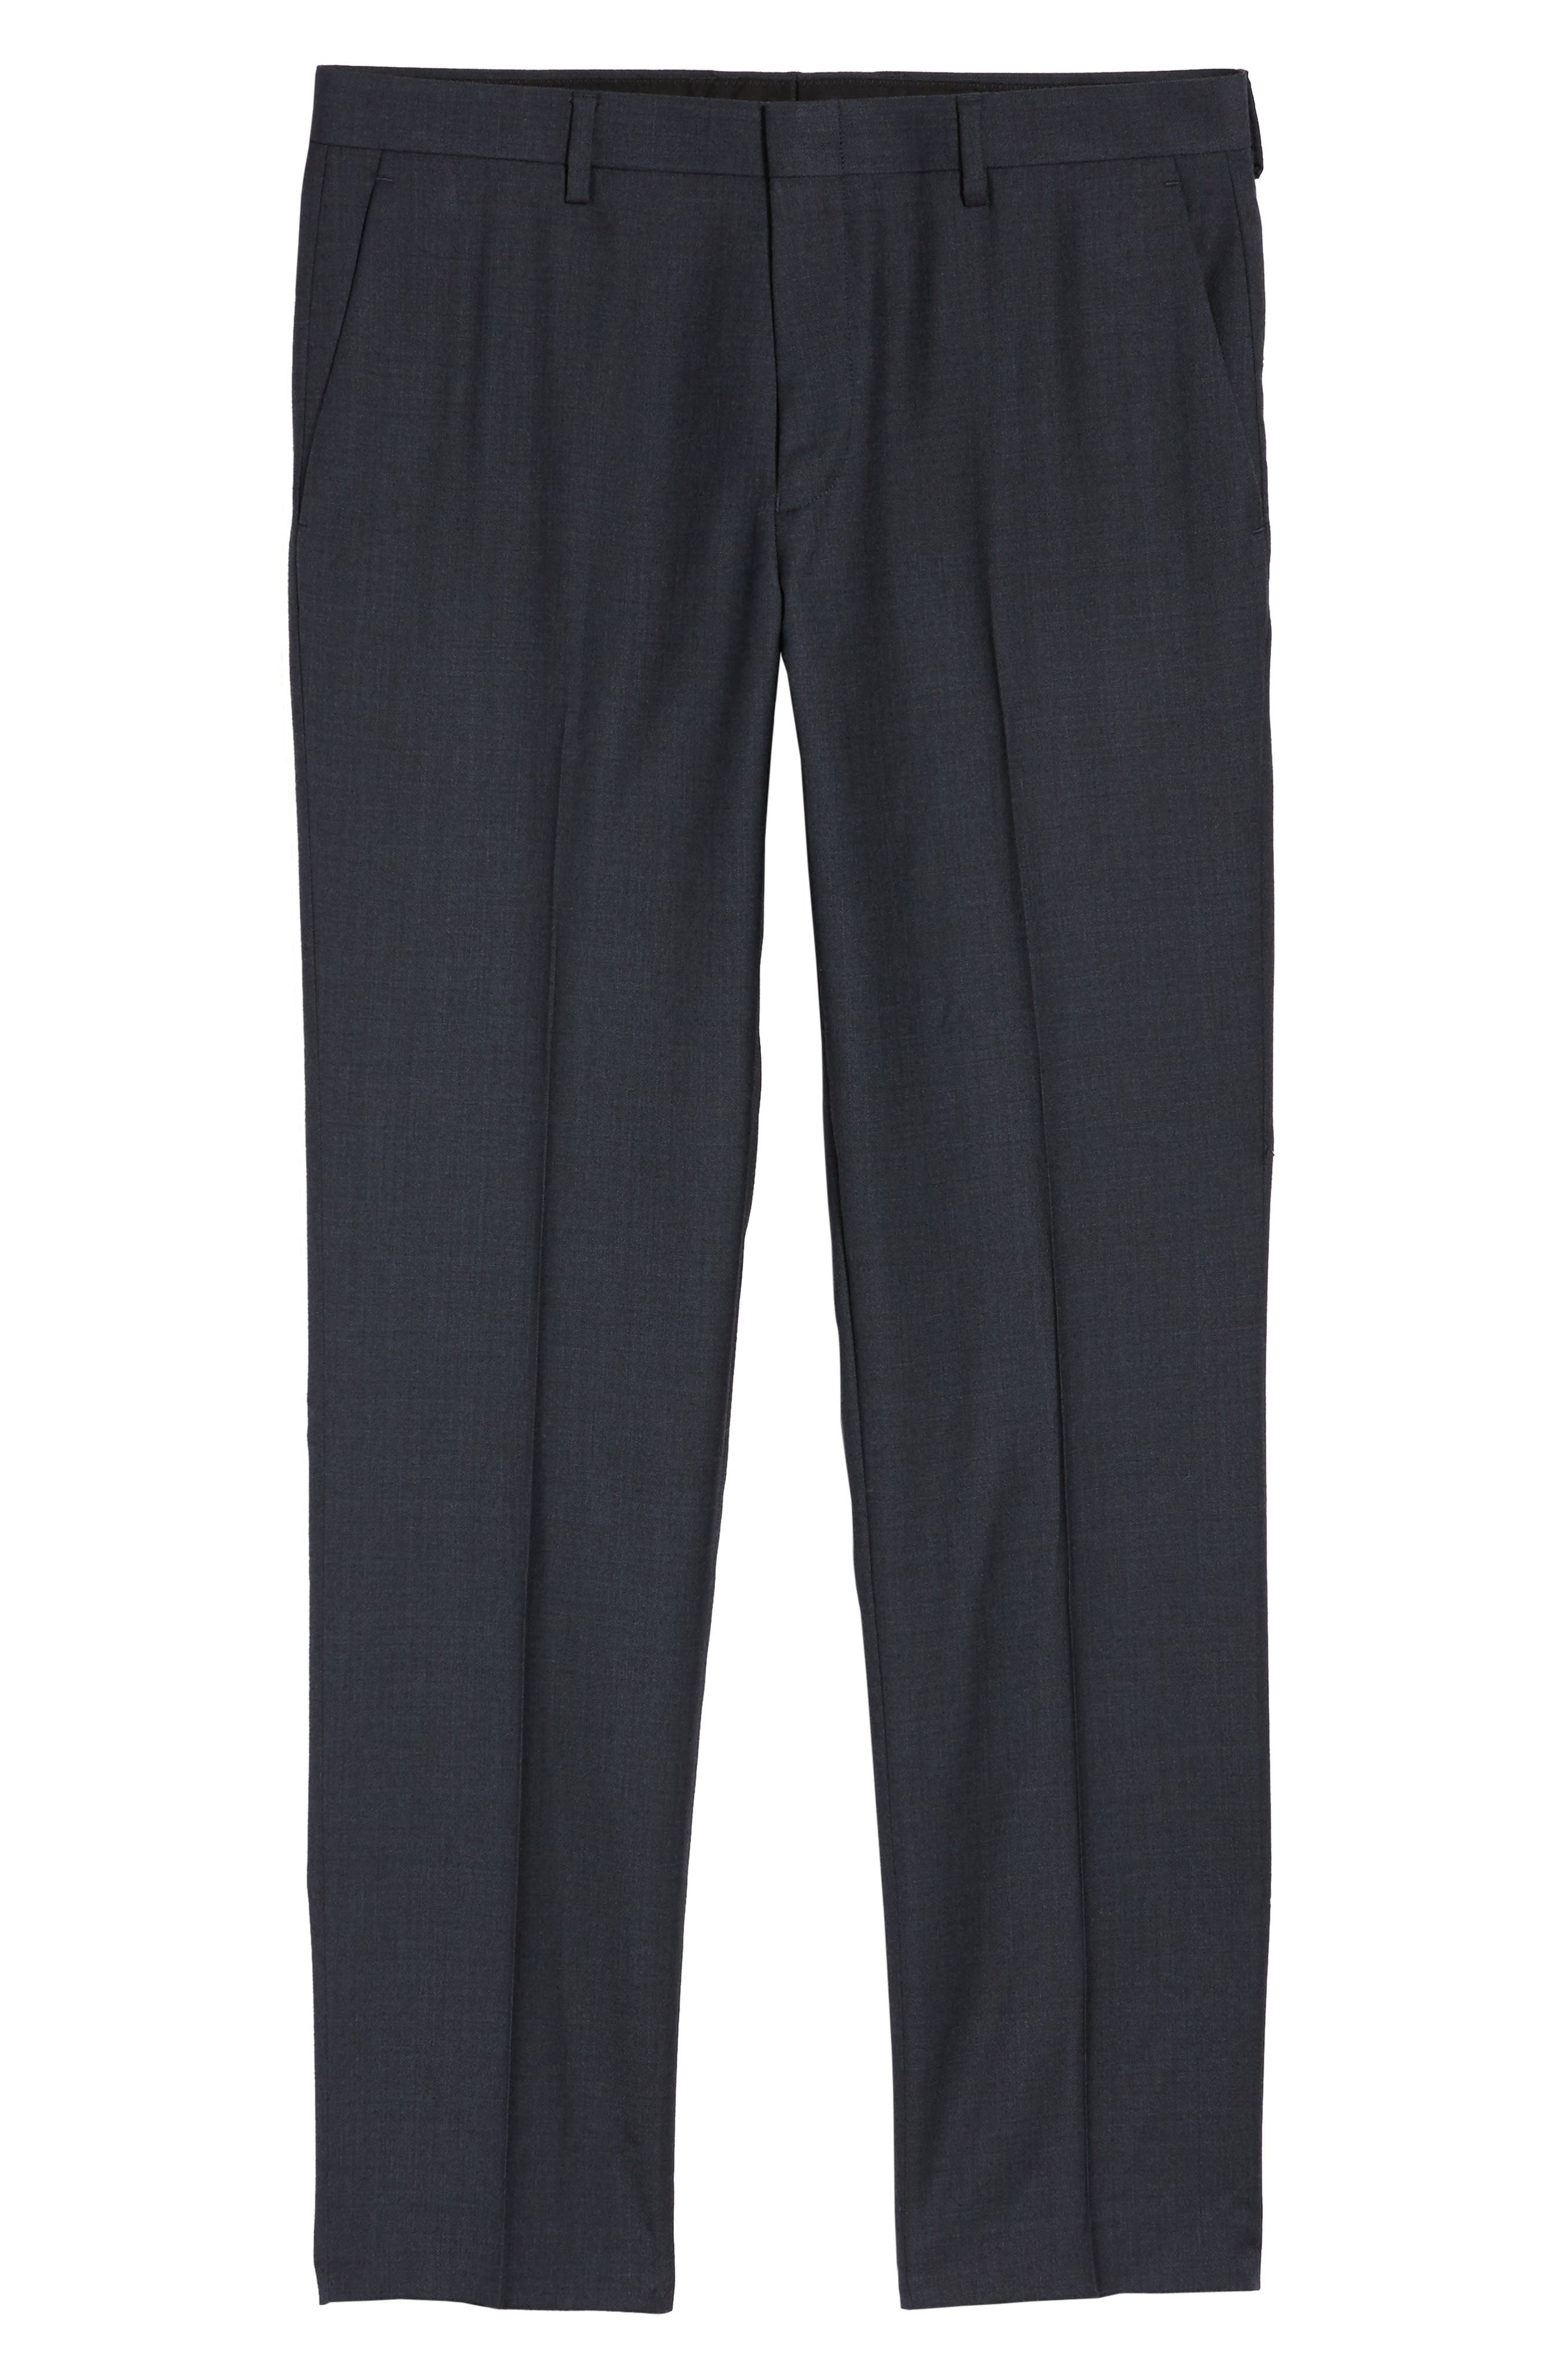 Ludlow Flat Front Solid Wool Trousers,                             Alternate thumbnail 12, color,